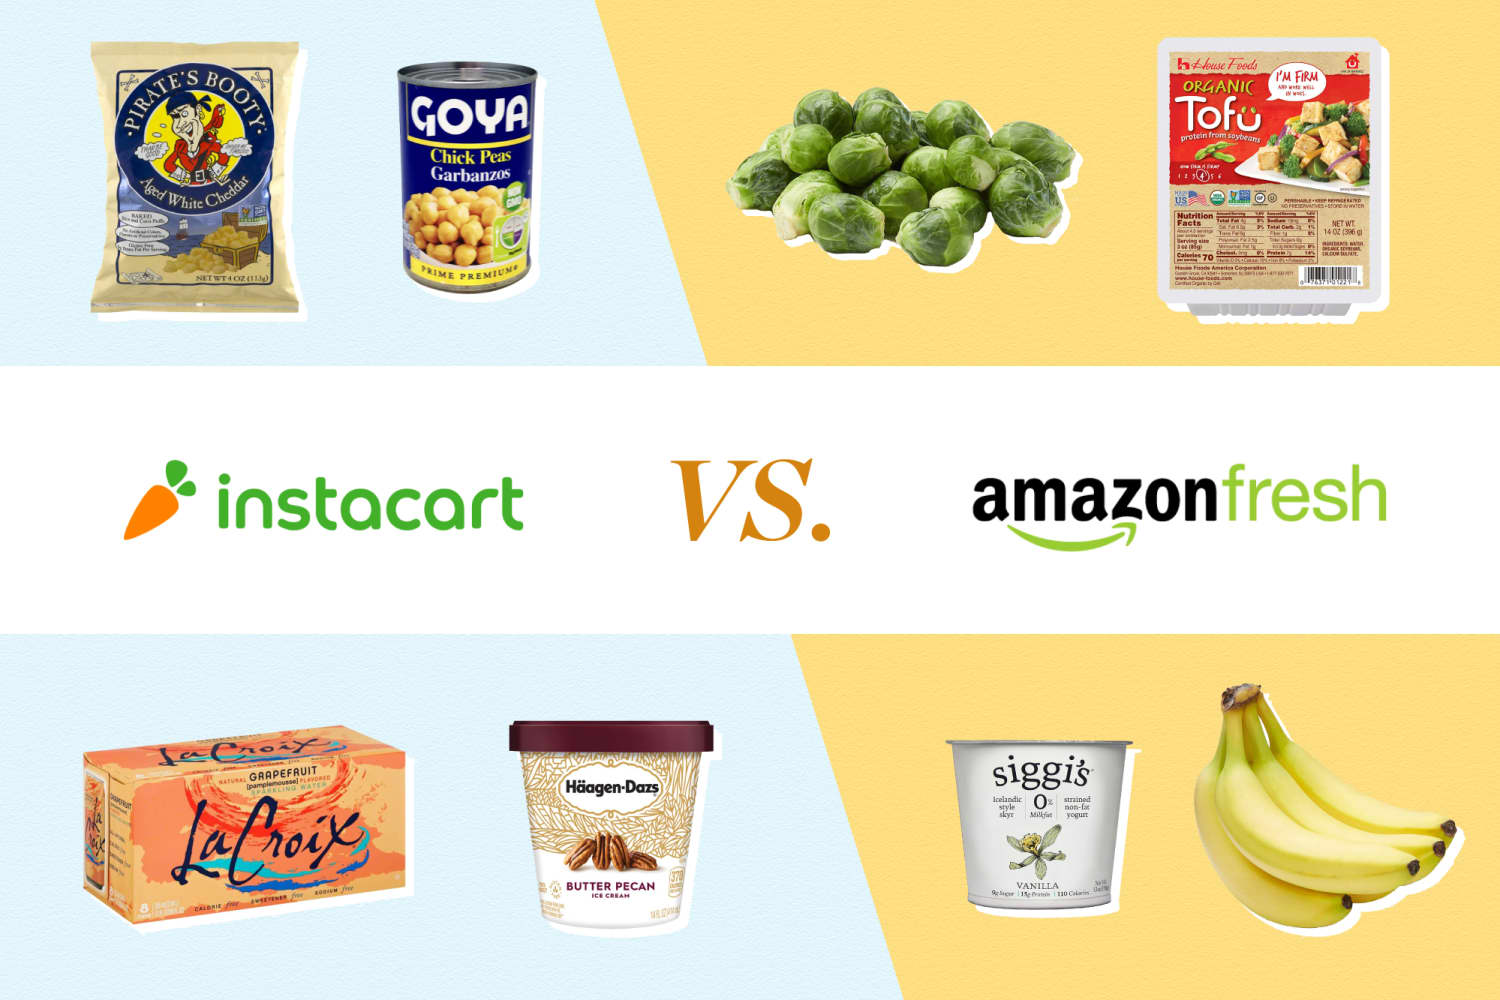 I Compared Prices for 15 Items on Instacart and AmazonFresh